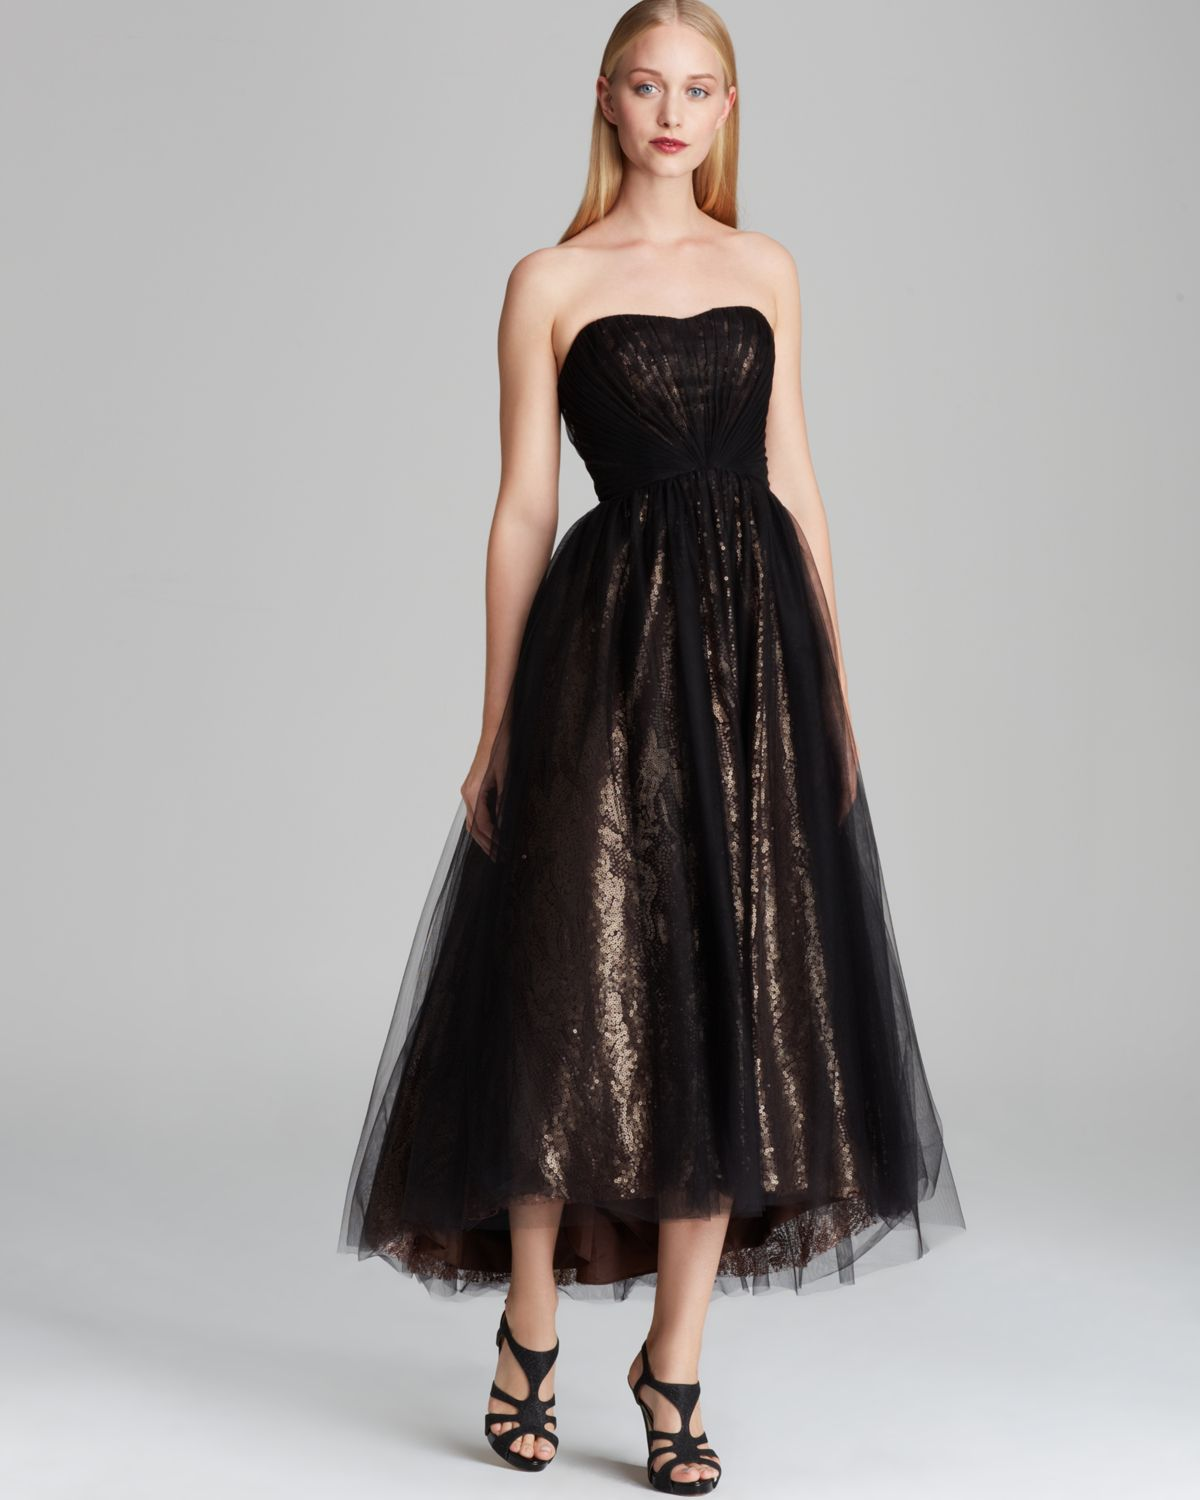 Lyst - Ml monique lhuillier Tealength Tulle Over Metallic Lace ...